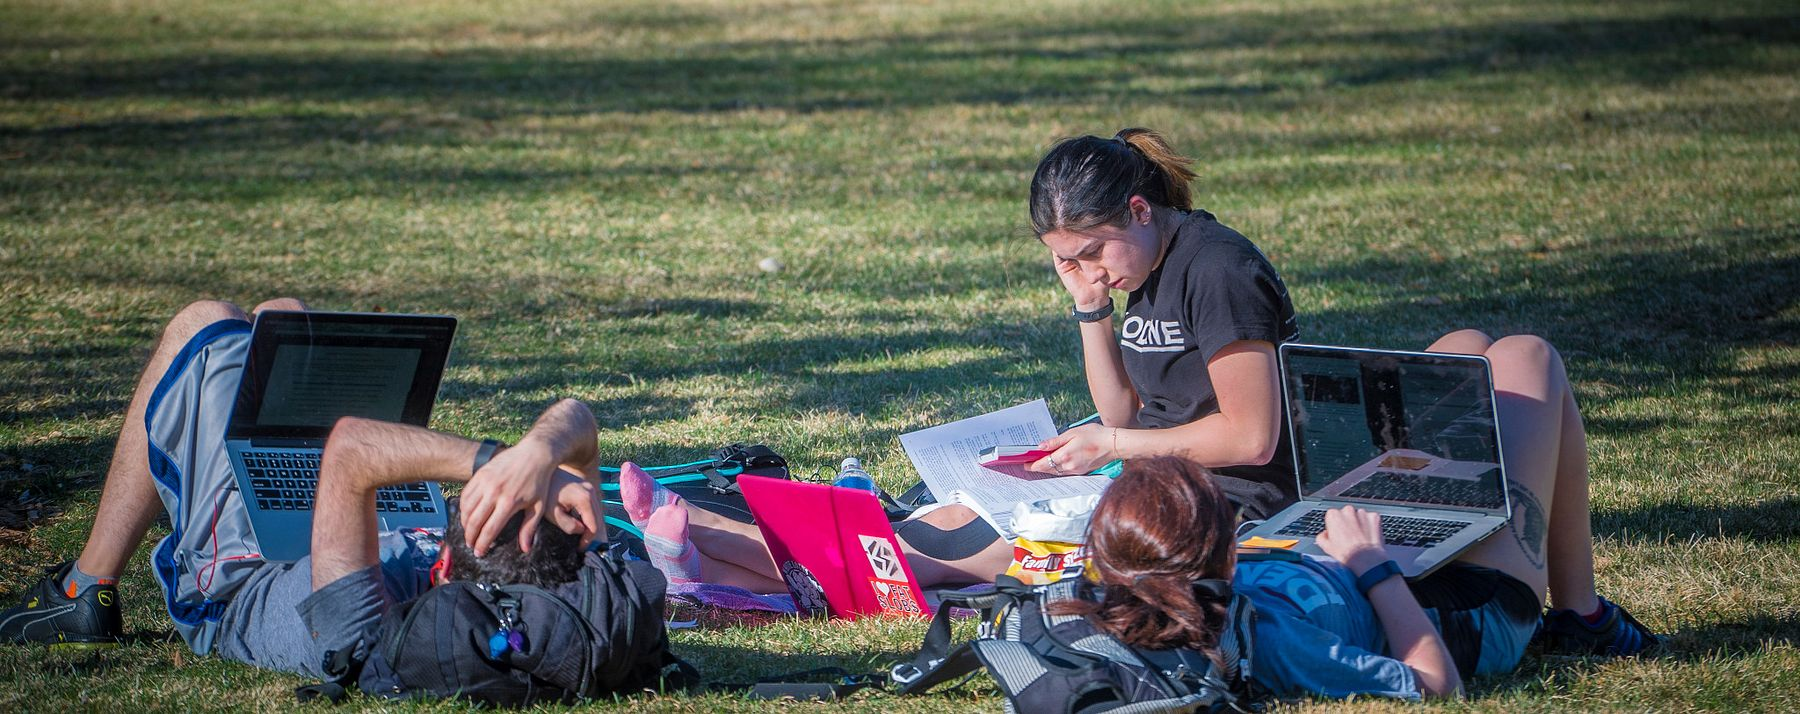 students studying on grass